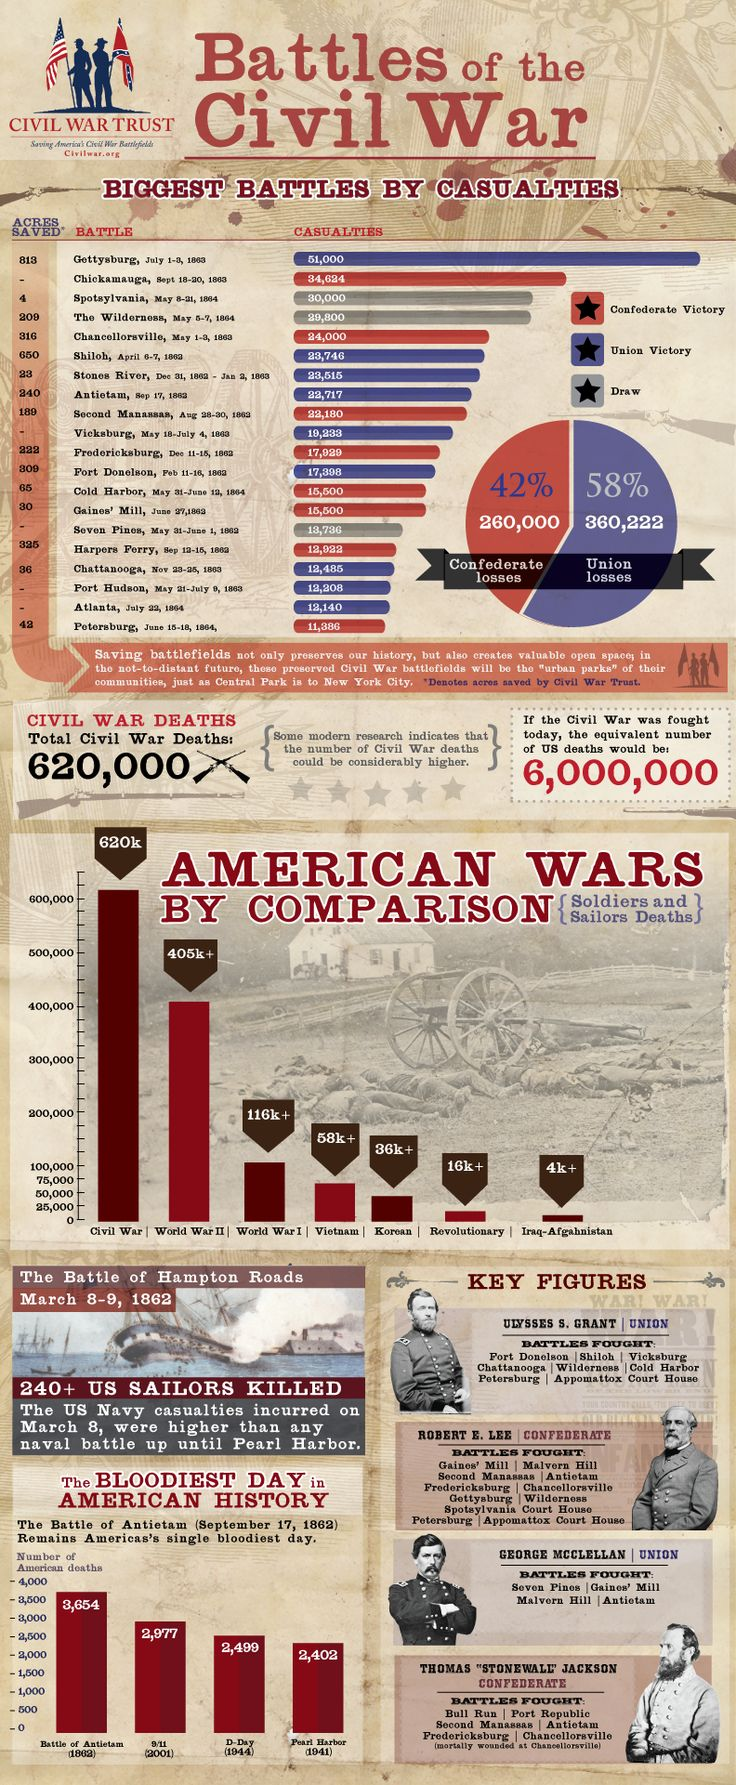 Civil War Trust put together an interesting and fairly well-done infographic that they are making available to post on websites. I thought I would share it here for your use. Brought to you by The …